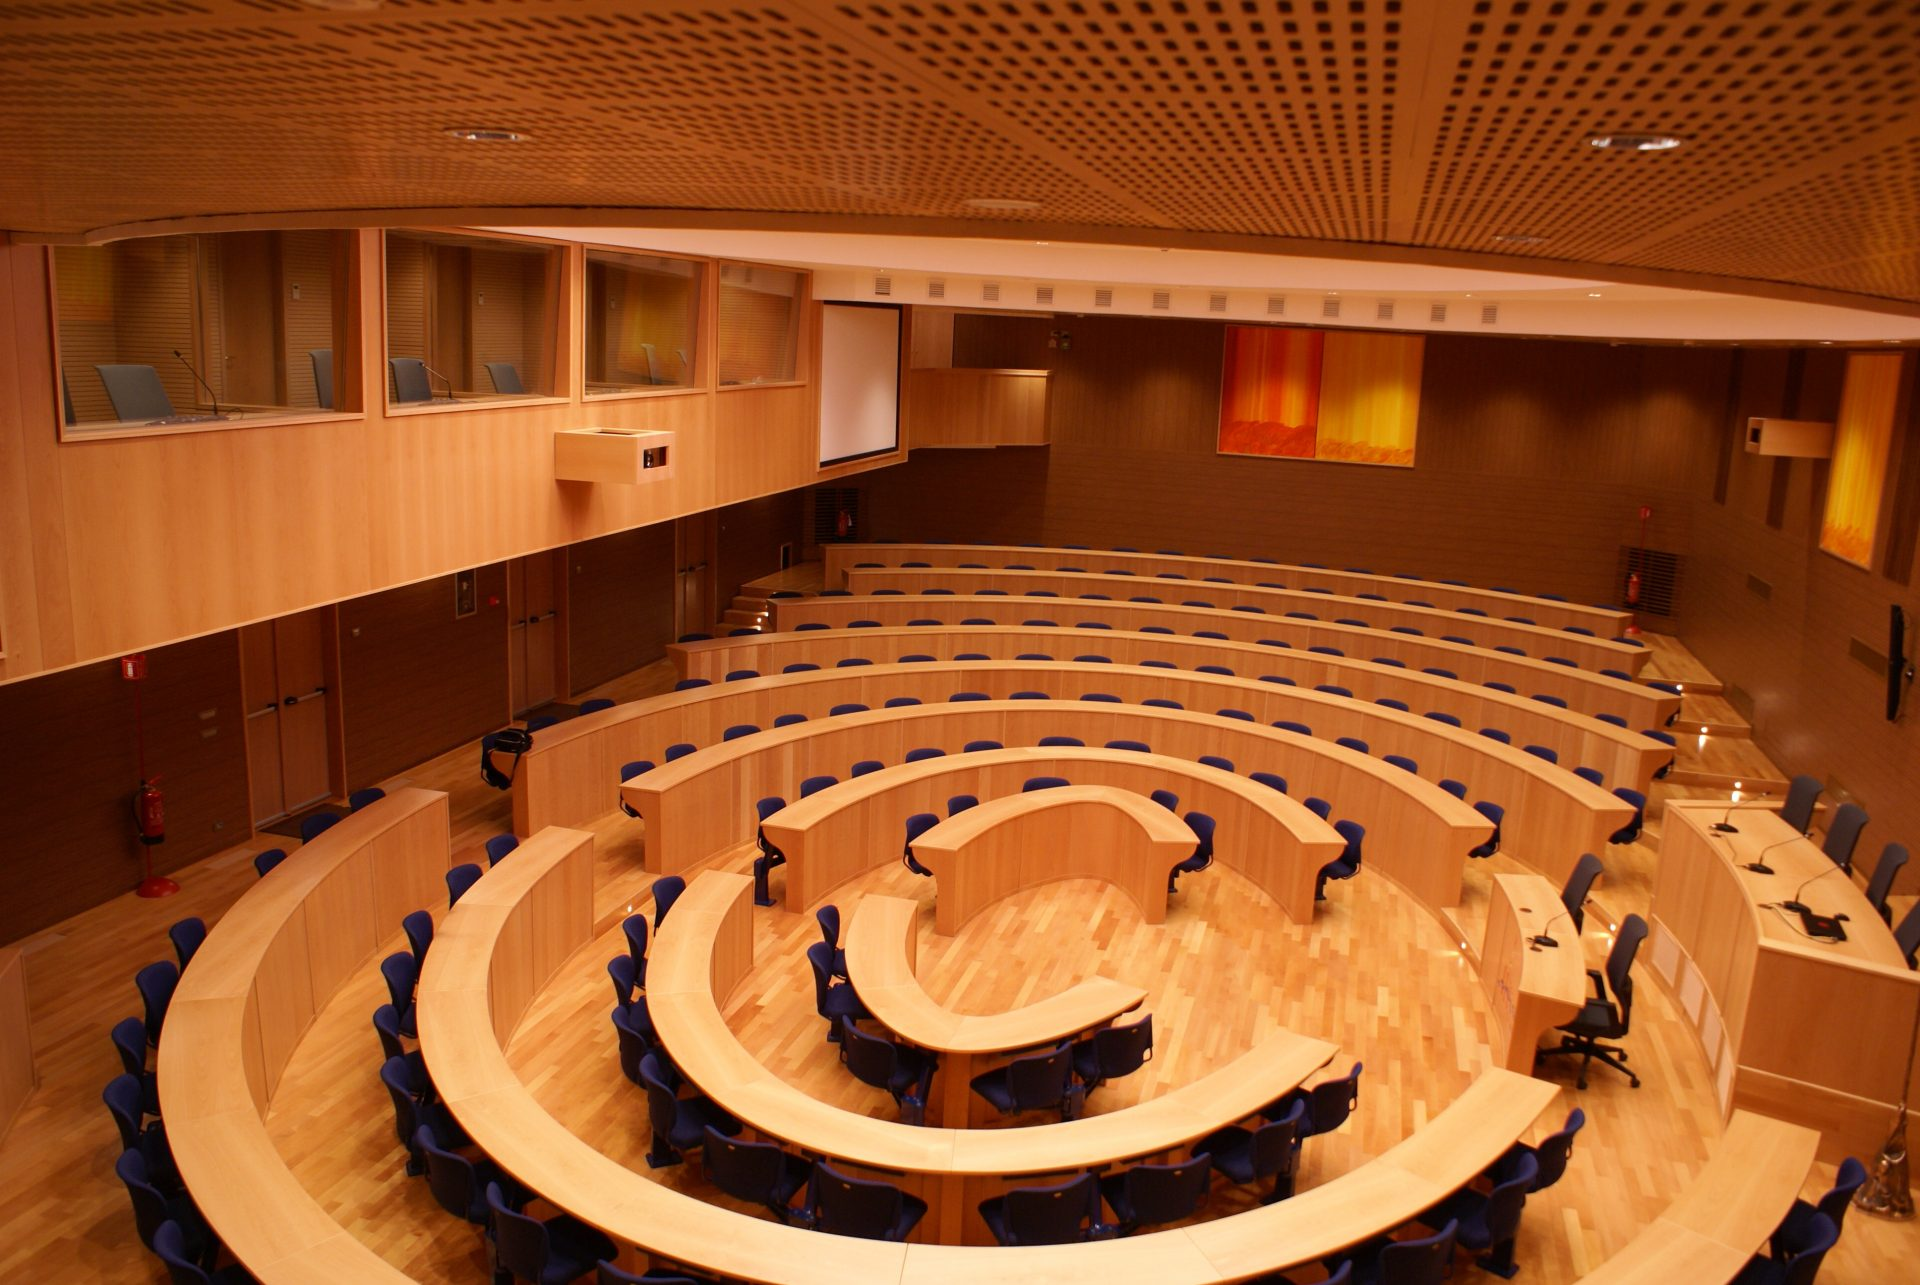 PanelHush Slotted - Acoustic Ceiling System